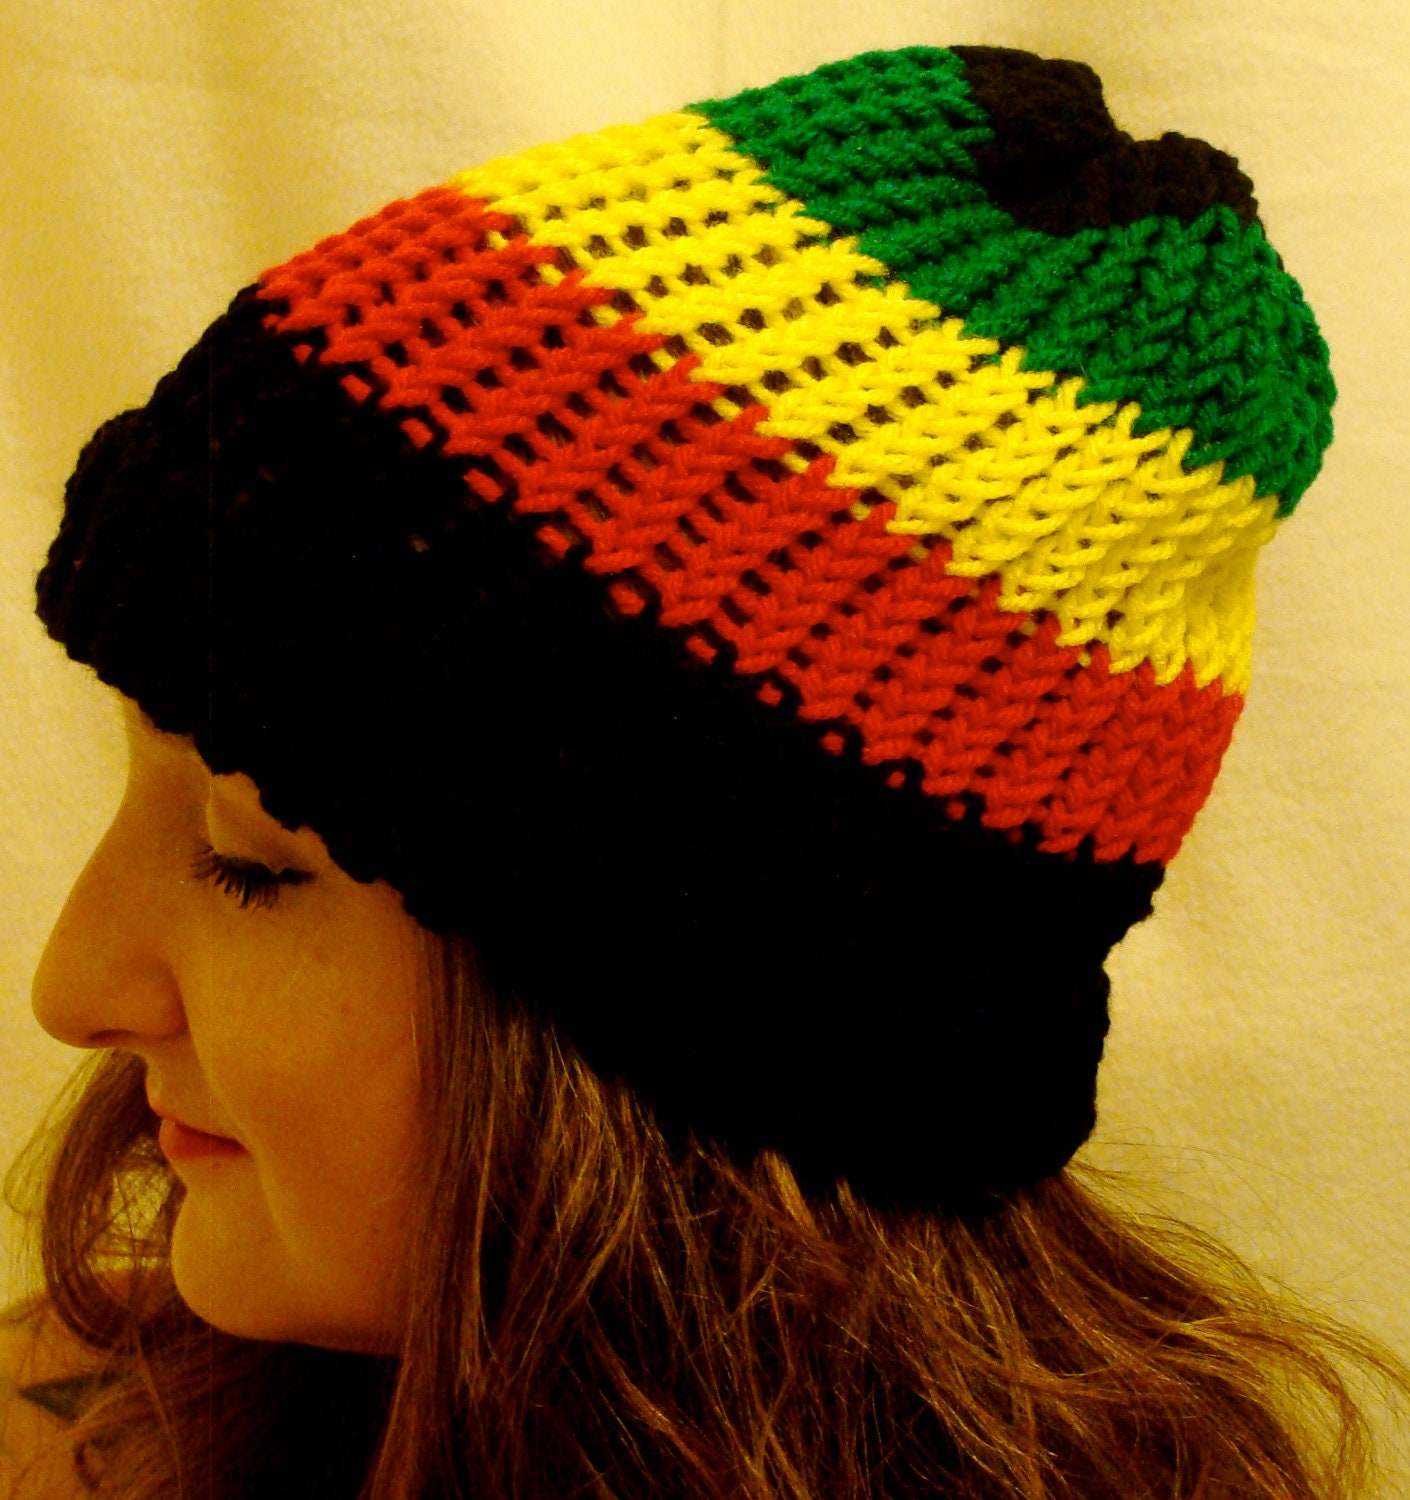 Knitting Patterns For Rasta Hats : Items similar to Rasta Color Knit Hat Black Red Yellow Gold Green Beanie Knit...